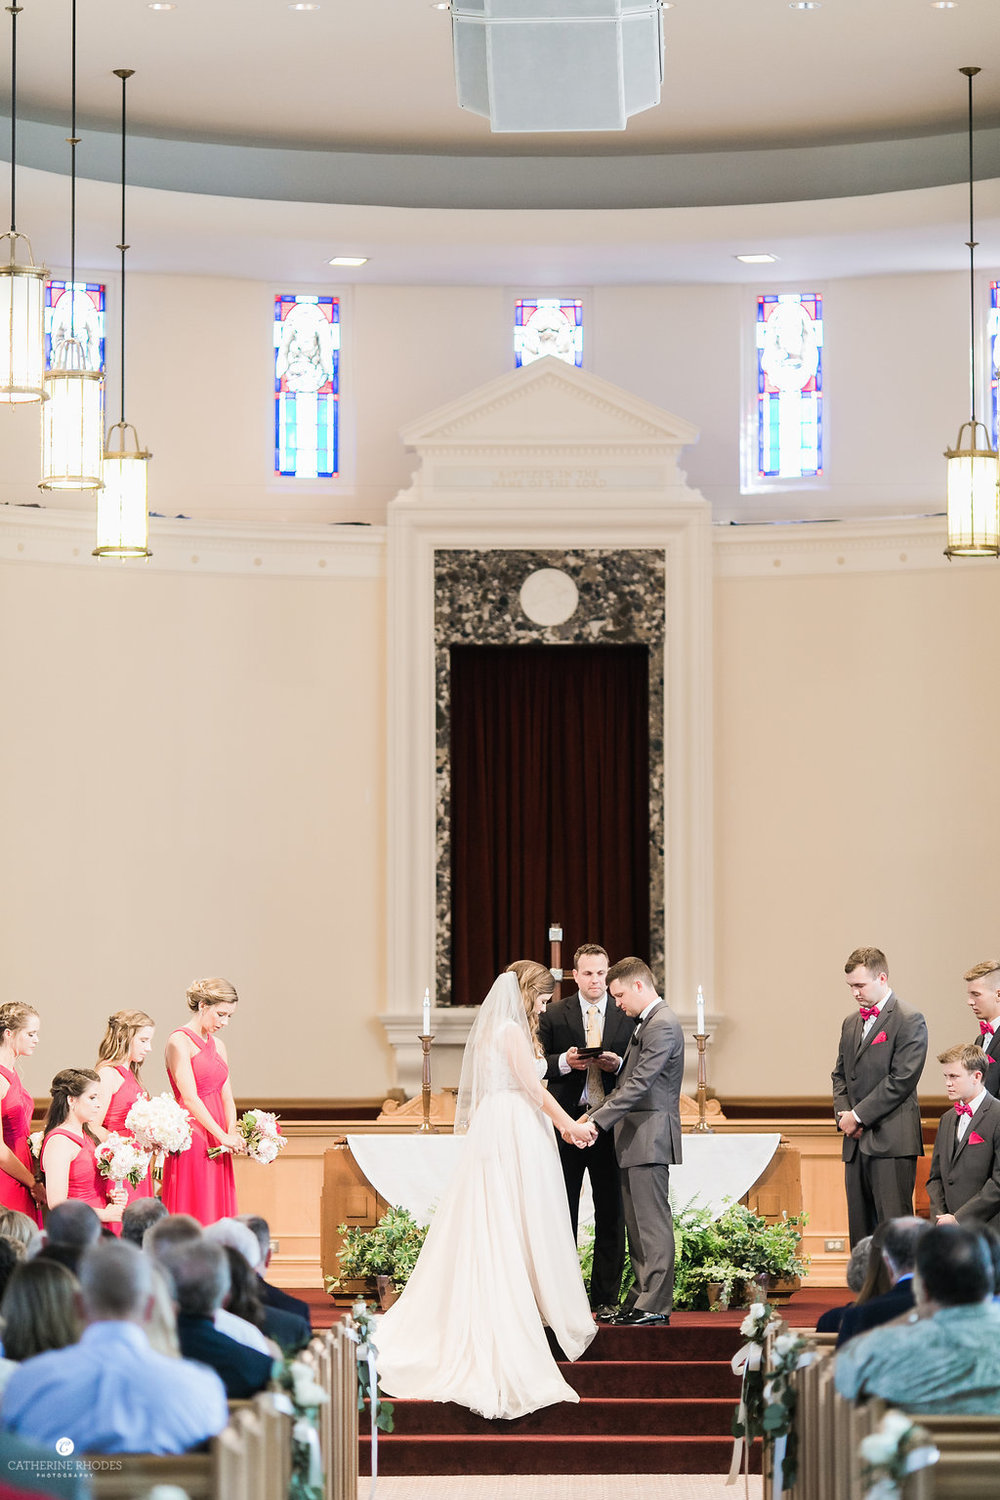 CountryClubofMissouriWedding_AnnaDrew_Ceremony_CatherineRhodesPhotography(165of213)-Edit.jpg